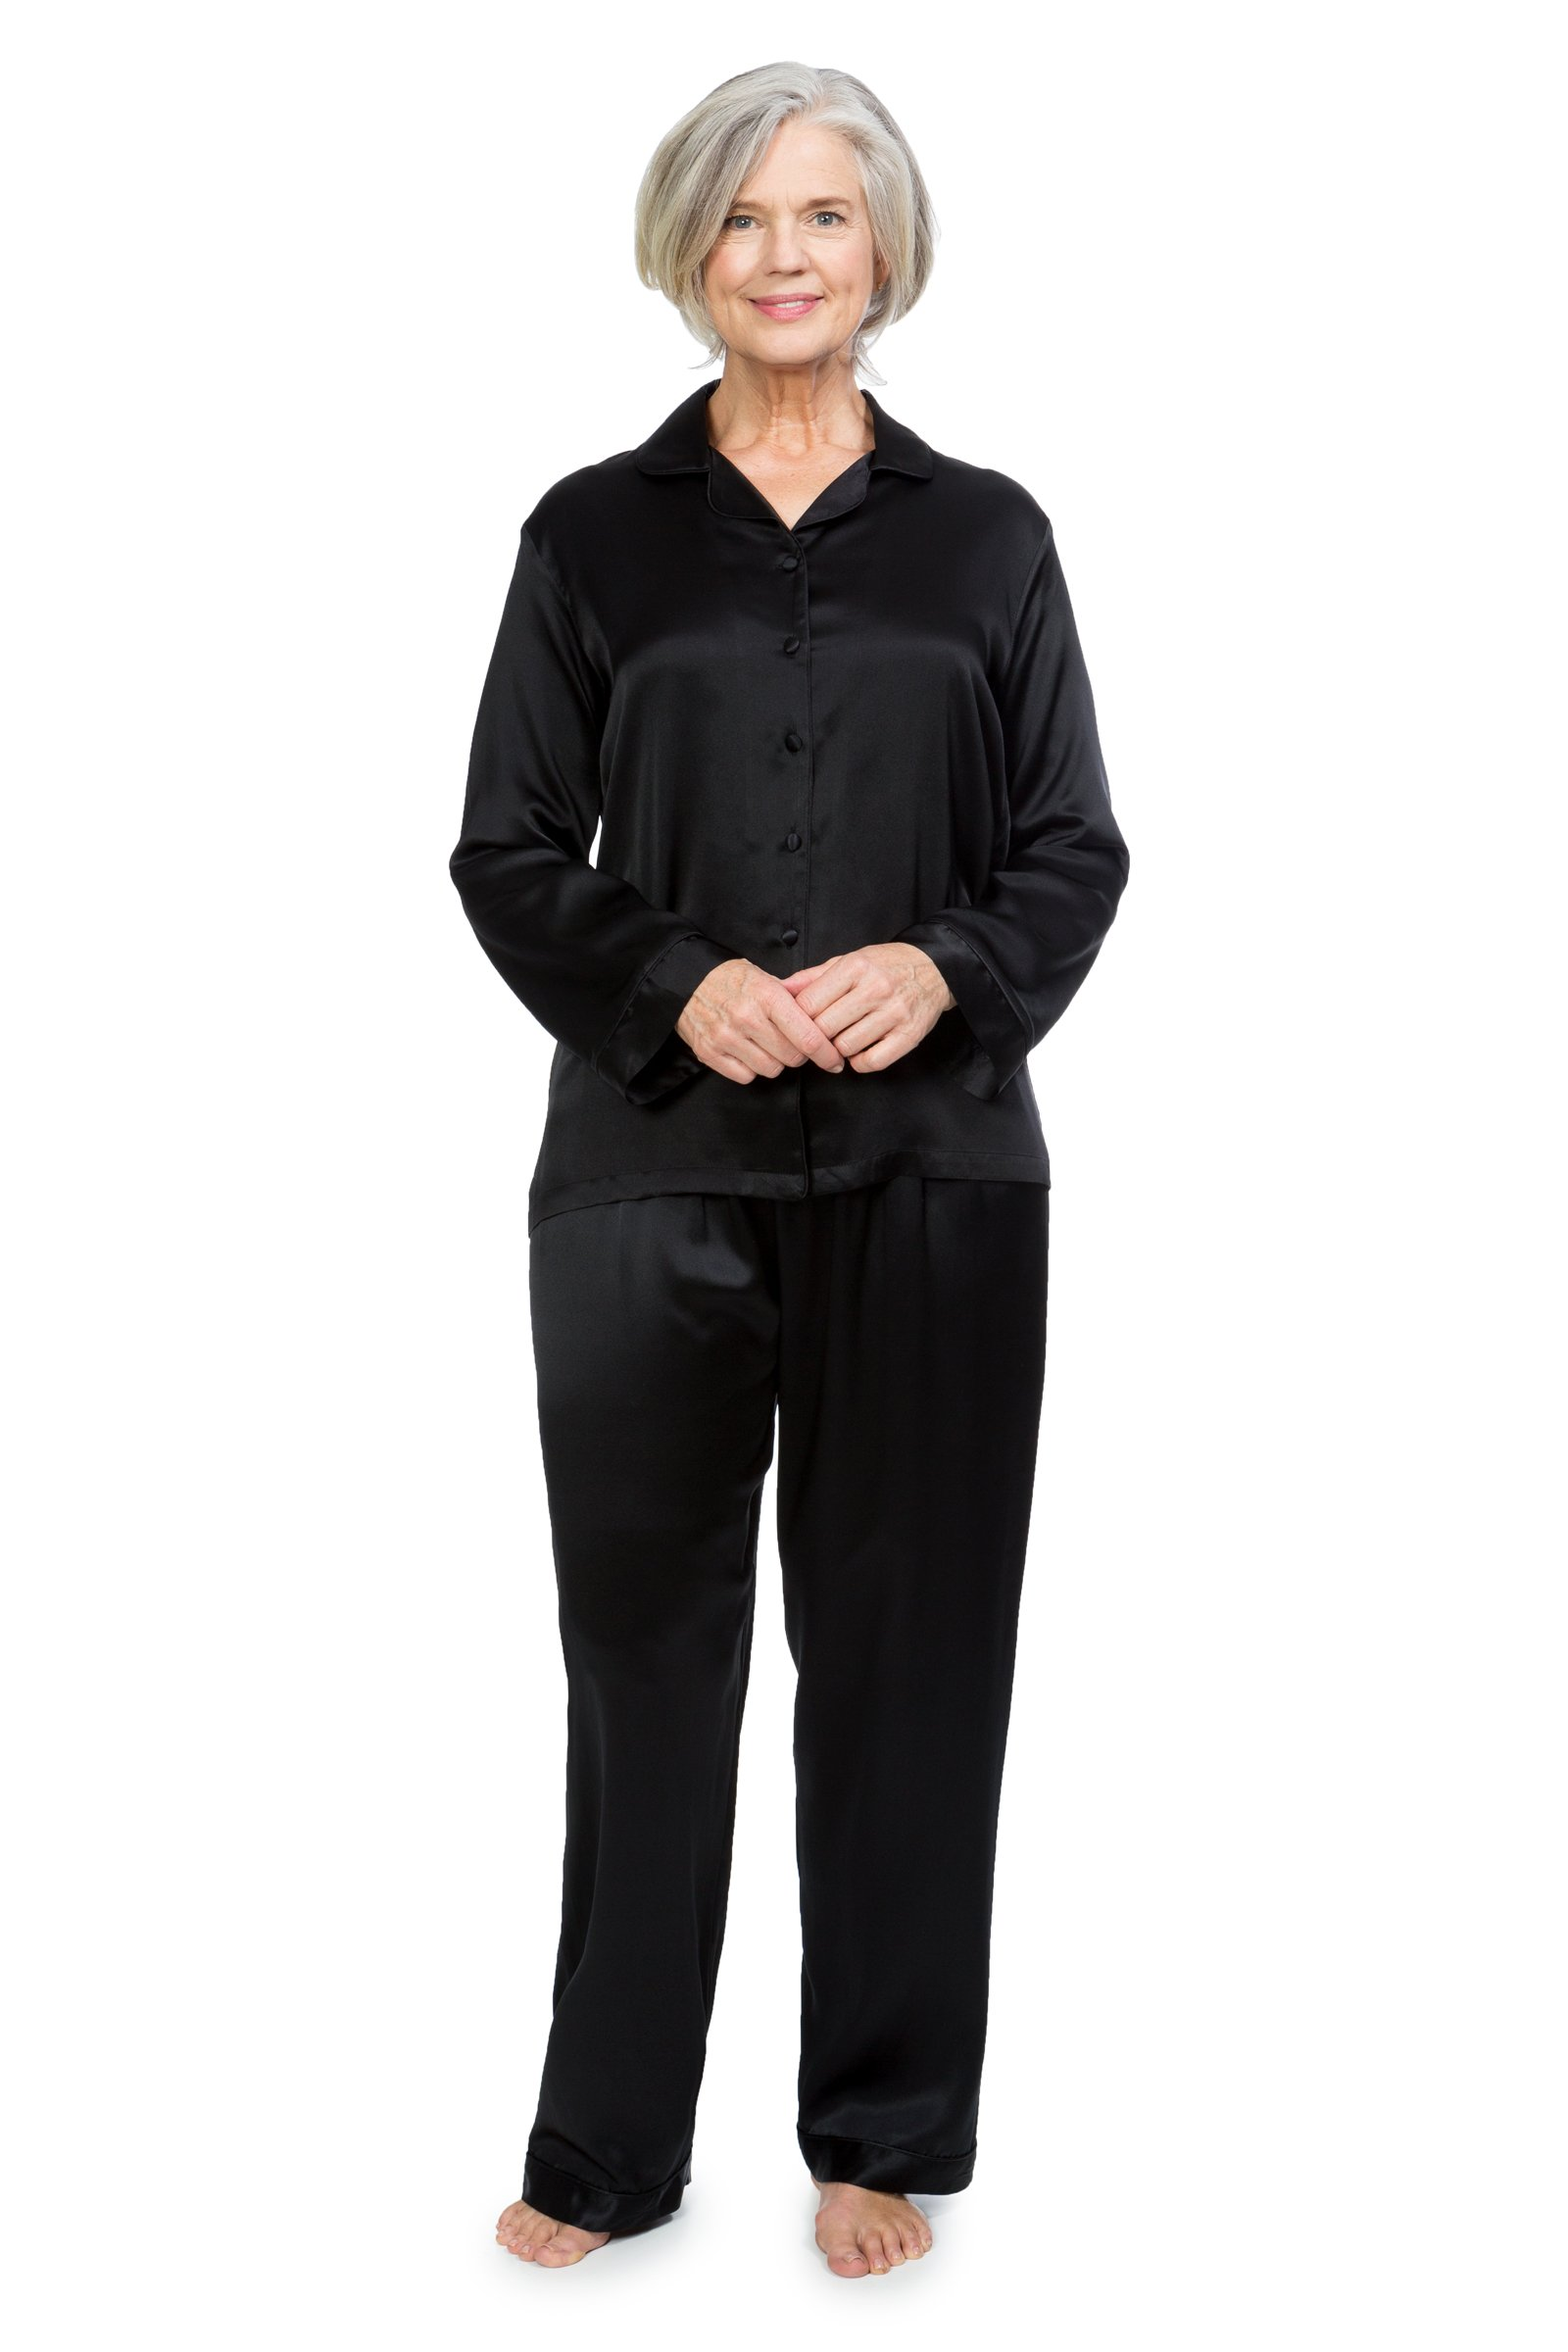 Women's 100% Silk Pajama Set - Luxury Sleepwear Pjs by TexereSilk (Morning Dew, Black, Medium) Popular Gifts for Mom Wife Daughter WS0001-BLK-M